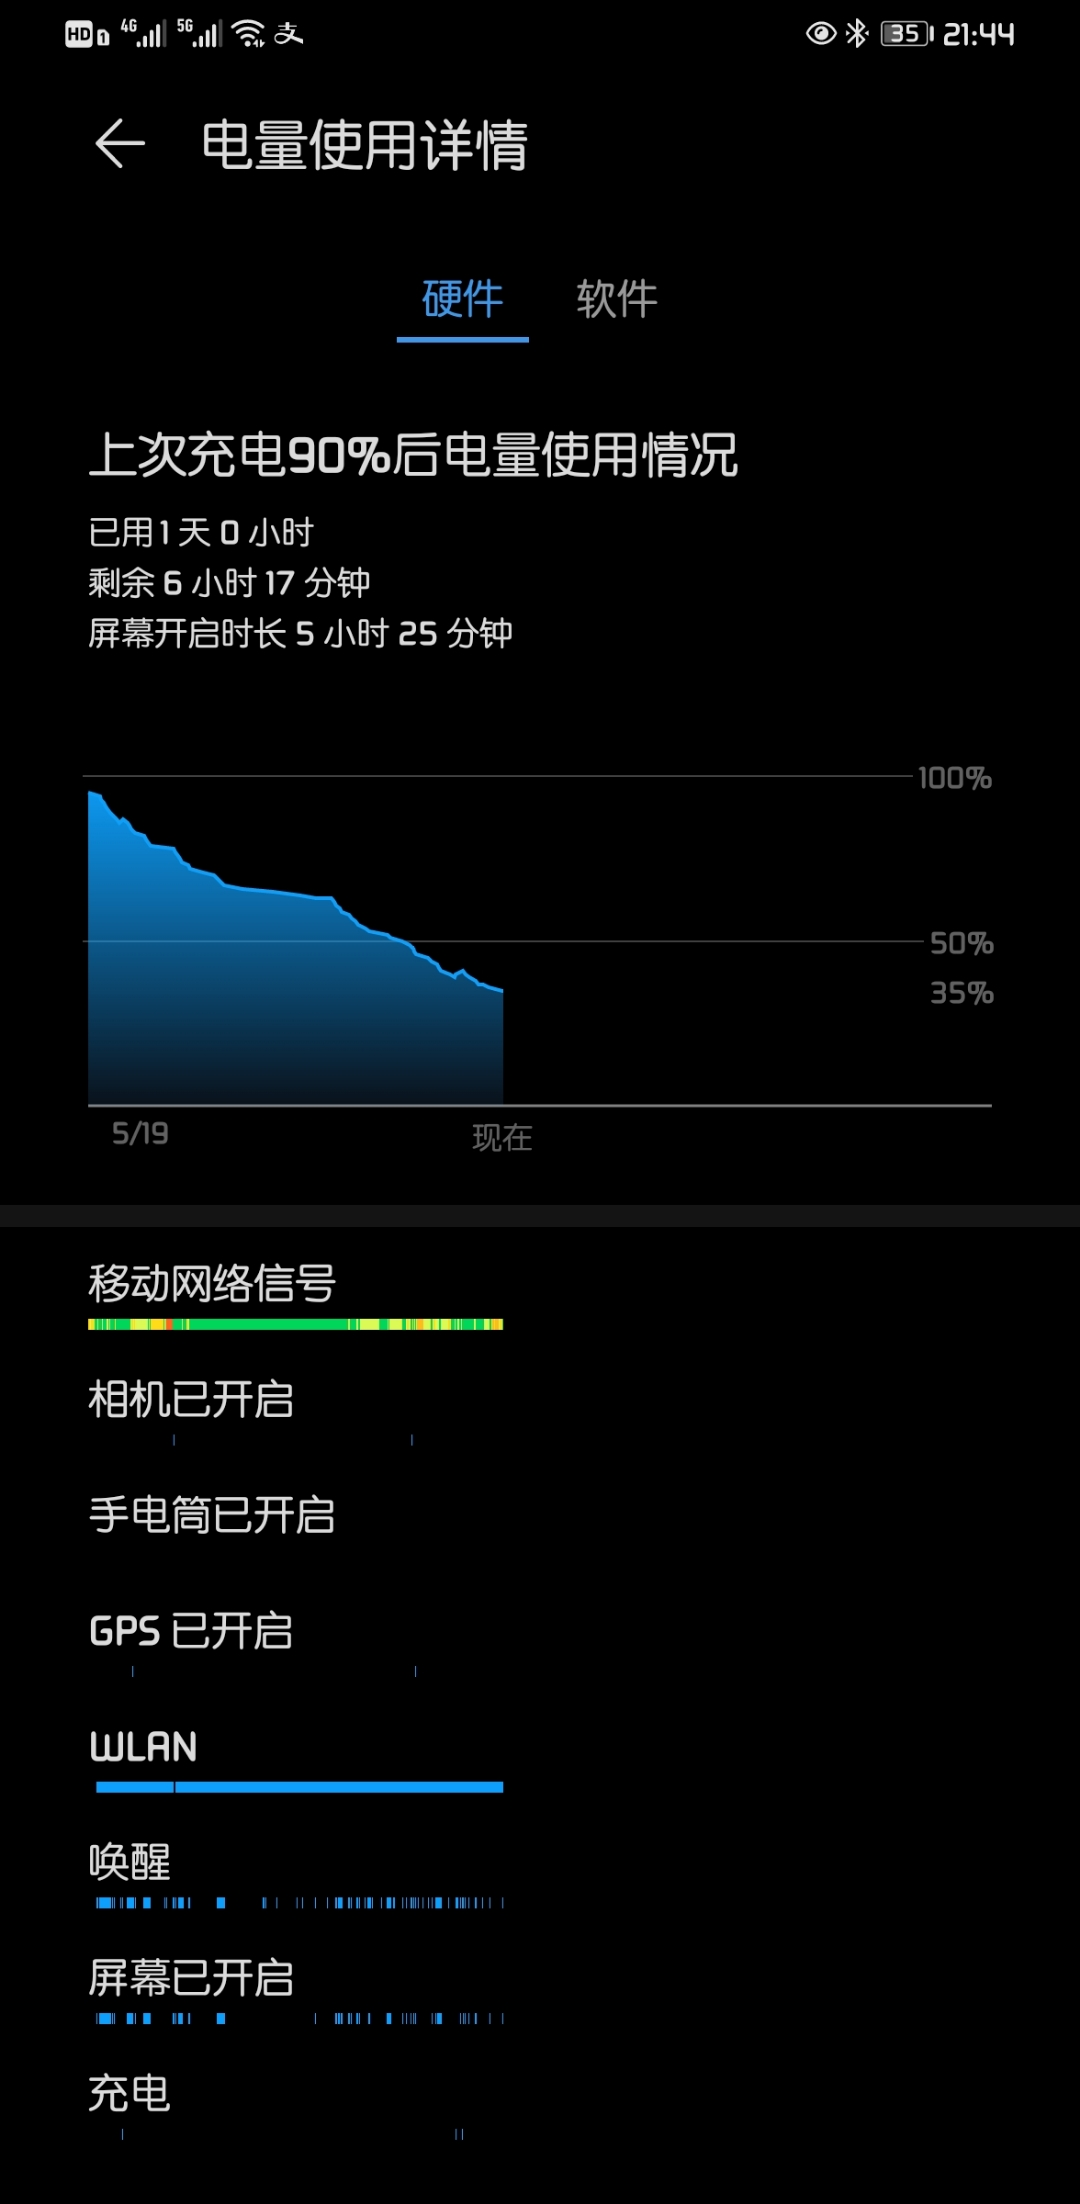 Screenshot_20200519_214405_com.huawei.systemmanager.jpg